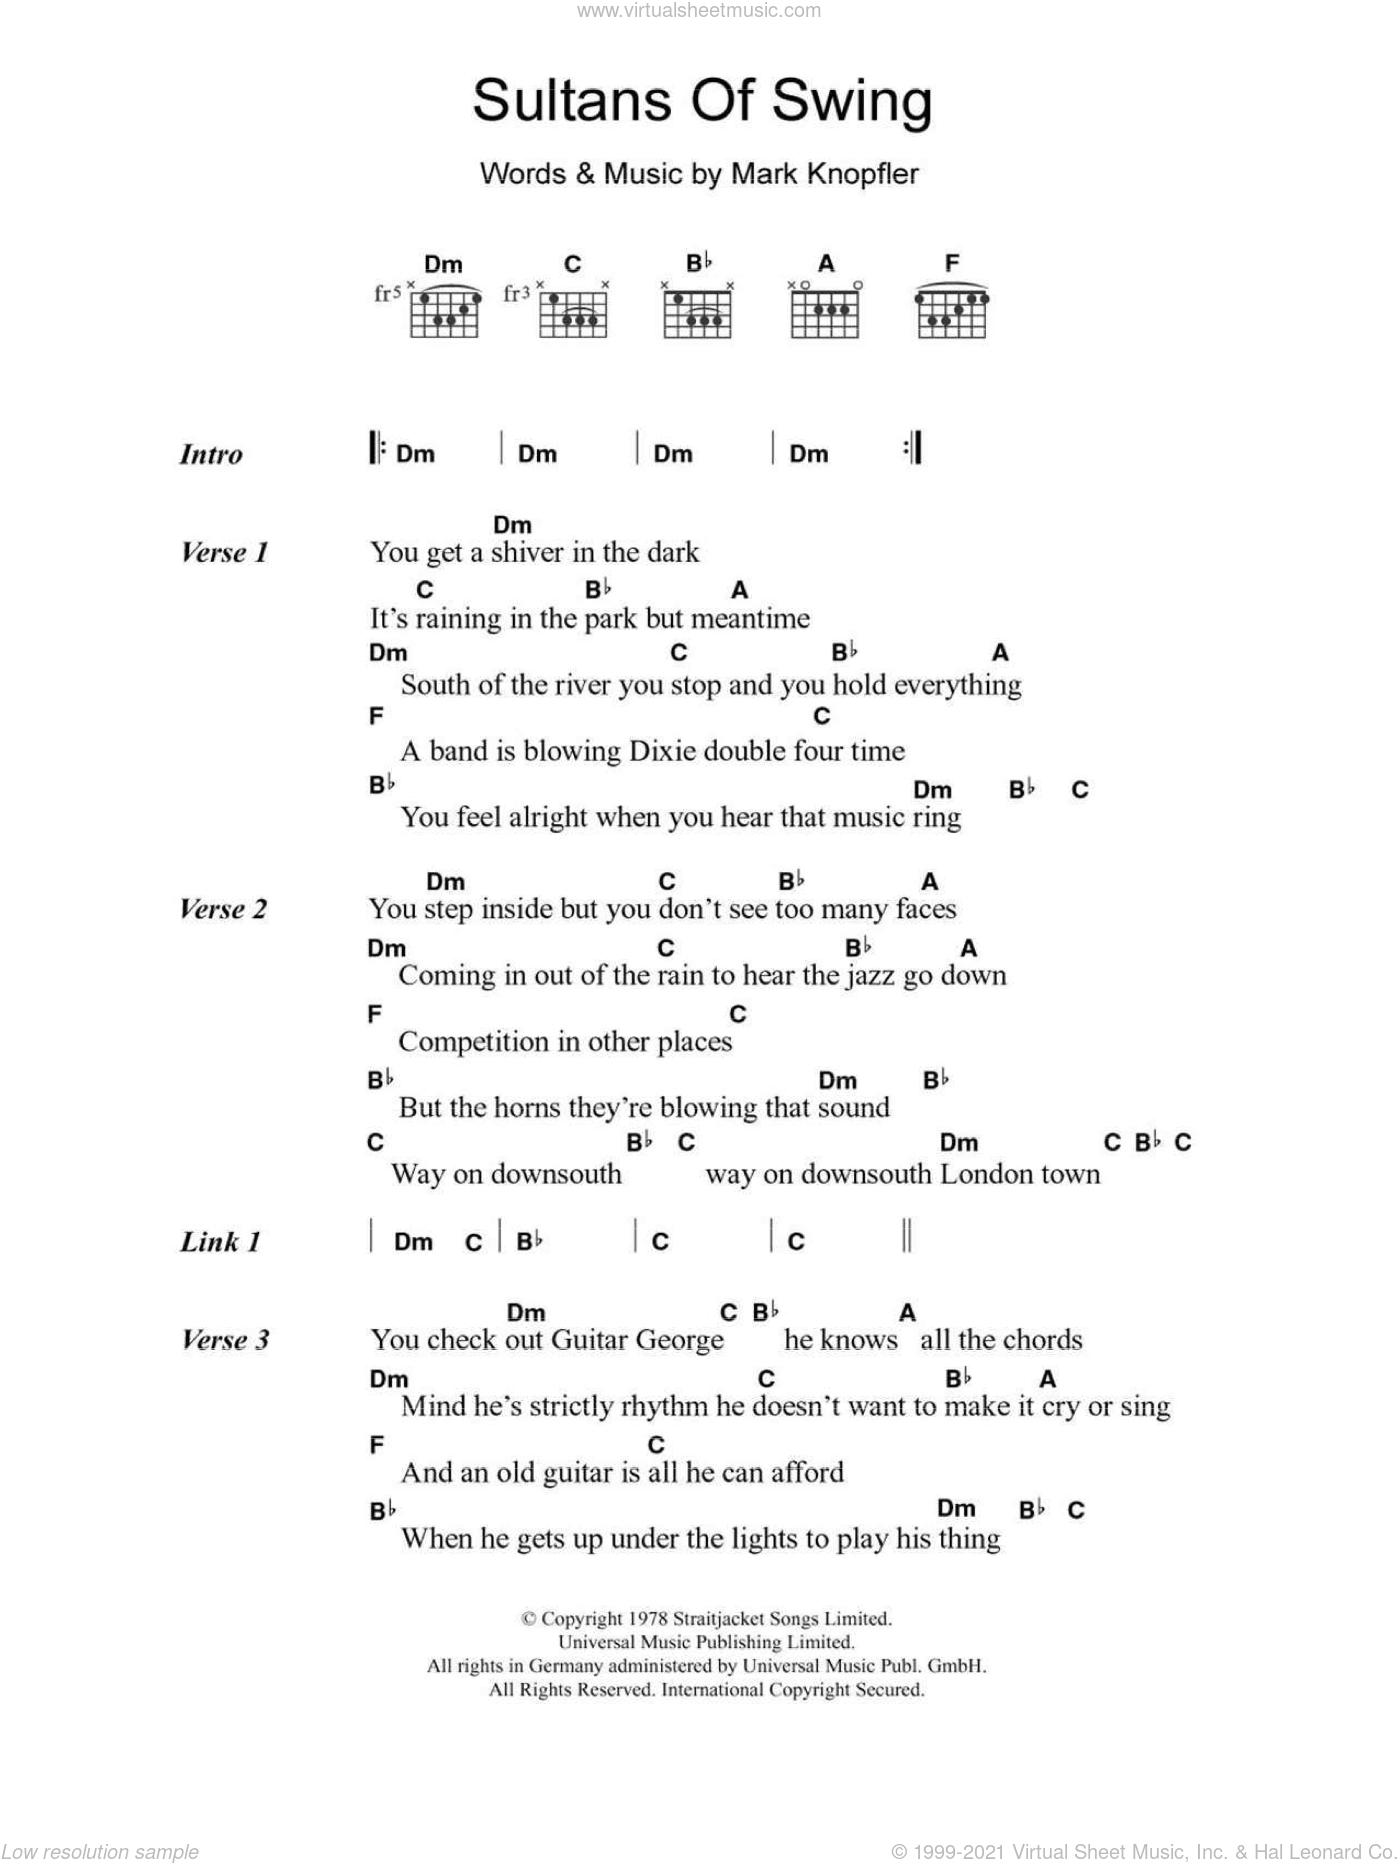 Sultans Of Swing sheet music for guitar (chords) by Mark Knopfler and Dire Straits. Score Image Preview.